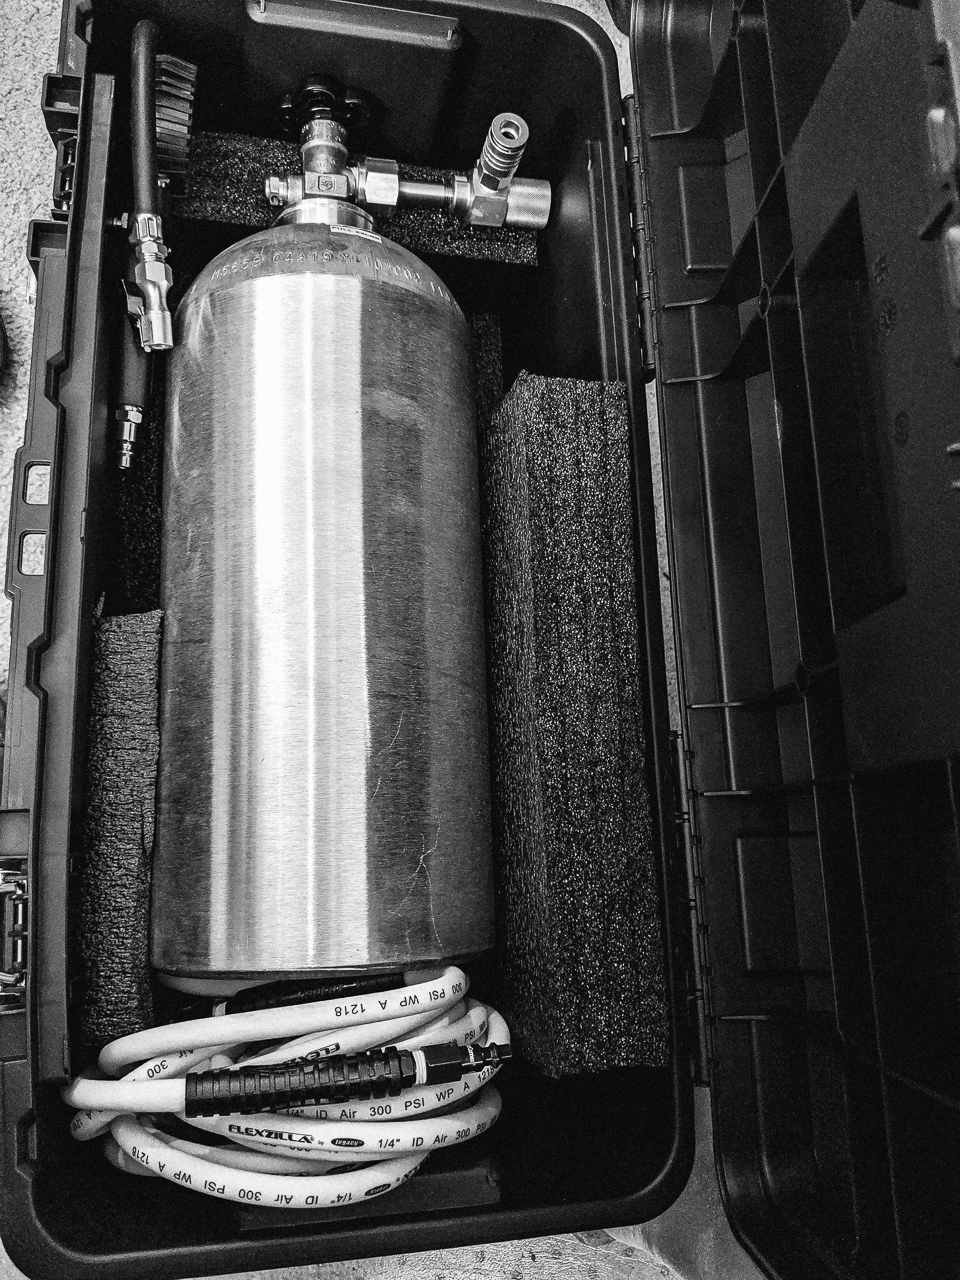 """Day 179 - 365 Day B&W Photo Challenge - My DIY """"Powertank"""" C02 Canister for airing up my off-road tires on the trail.  - Google Pixel 3, VSCO Kodak Tri-X400"""